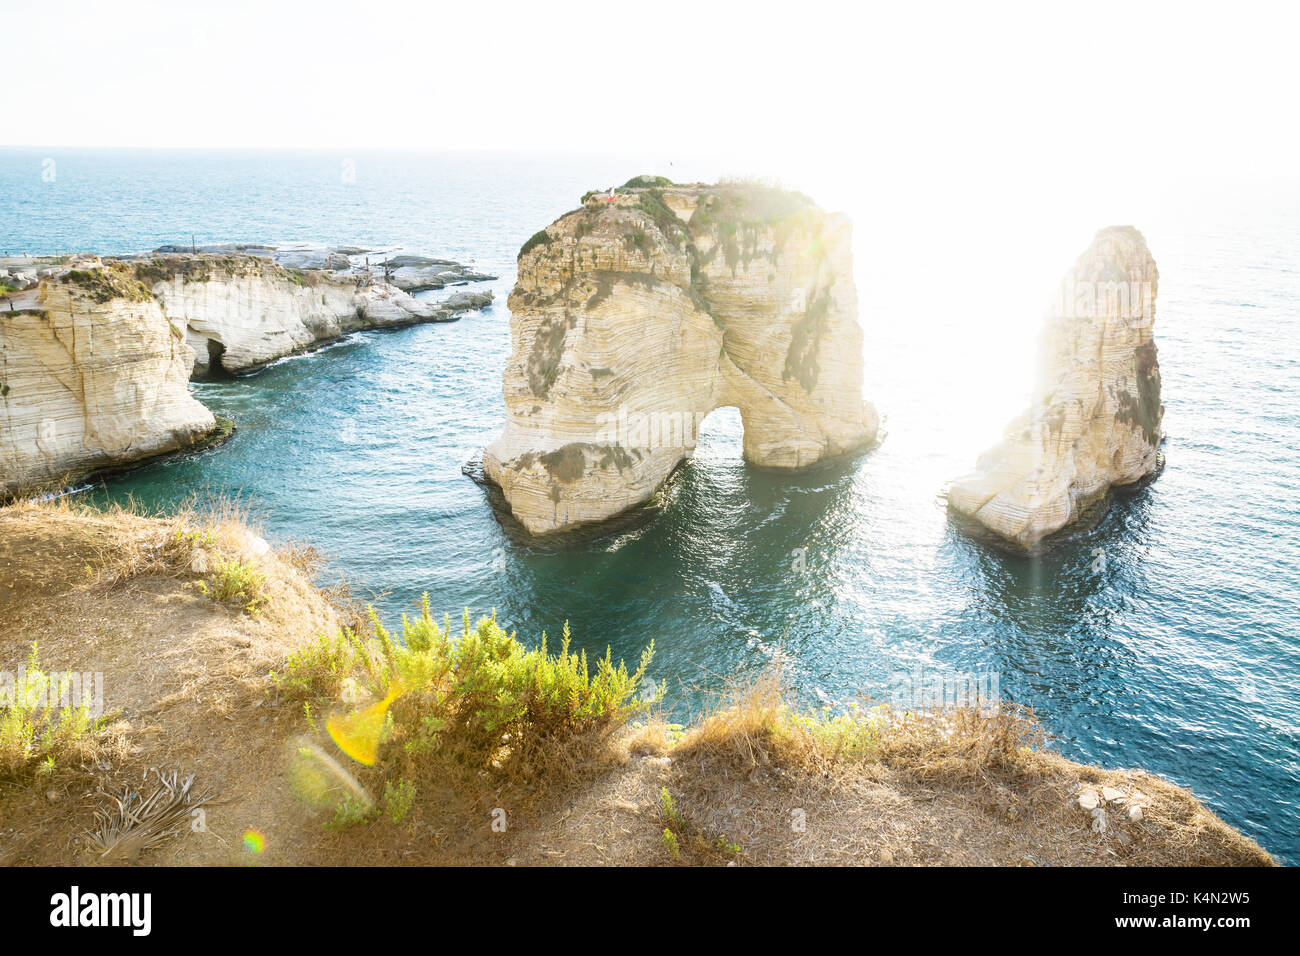 Pigeon rock with backlight sunlight, Beirut, Lebanon - Stock Image